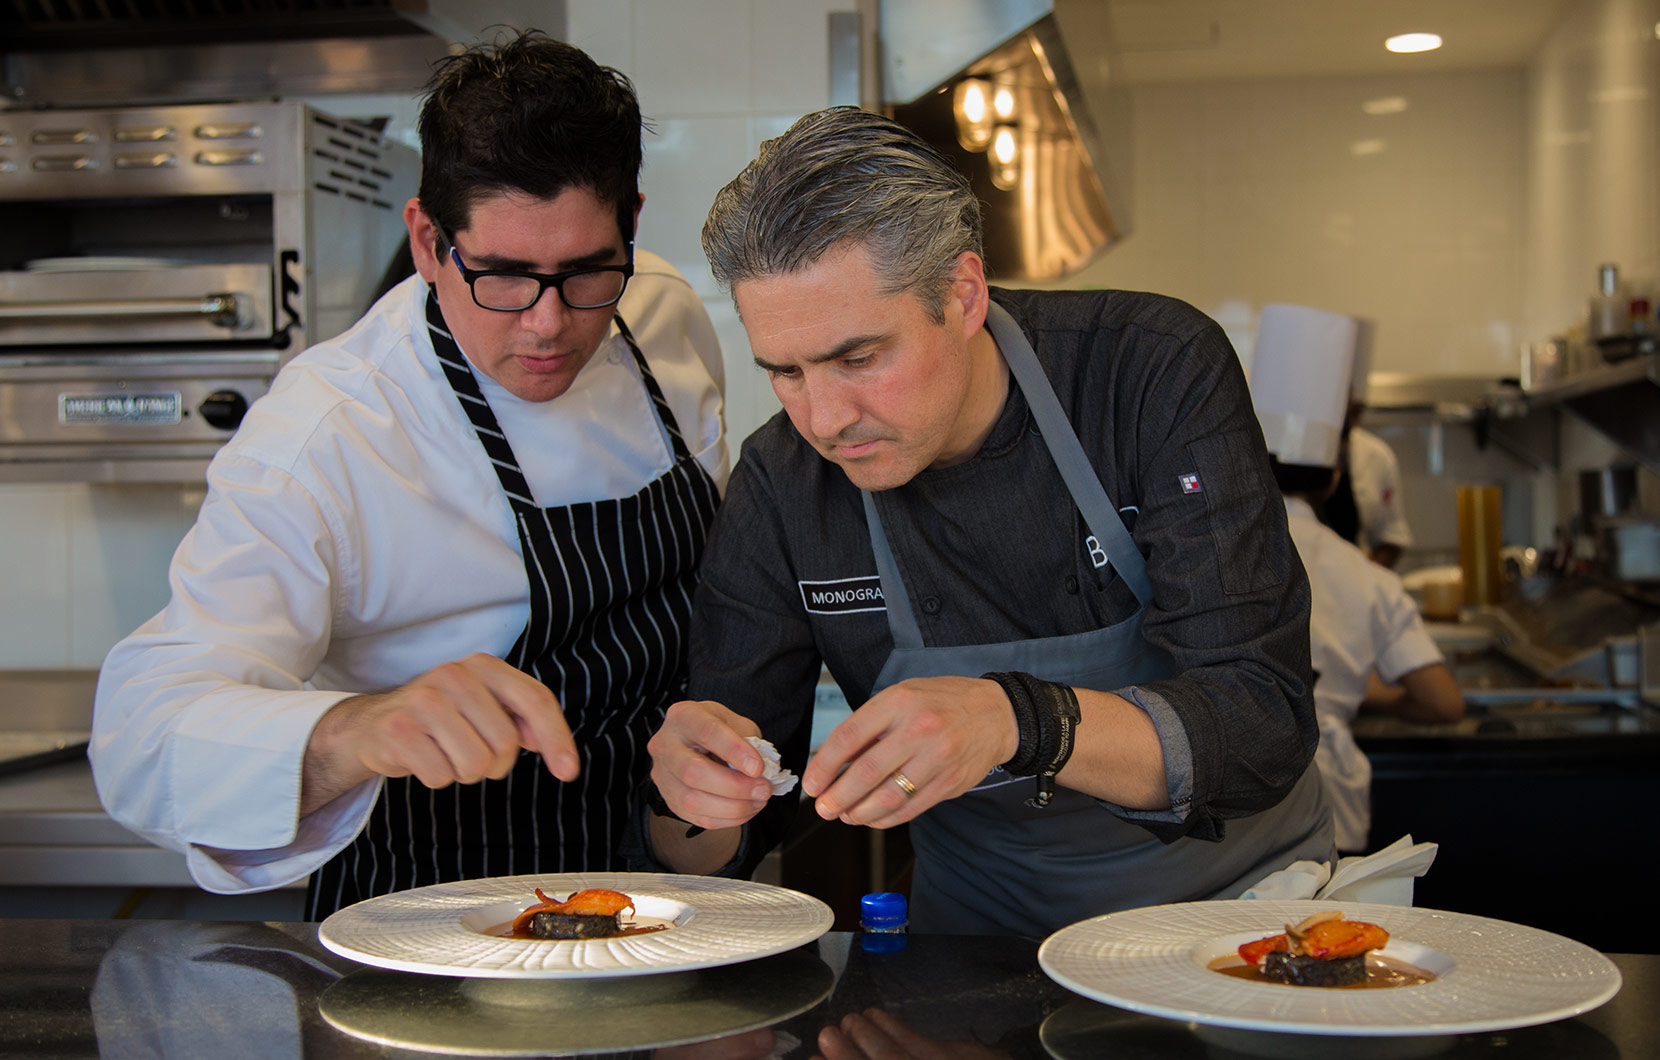 Chef Mikel Alonso works with Chef Enrique García of Epazote to artfully plate a dish.